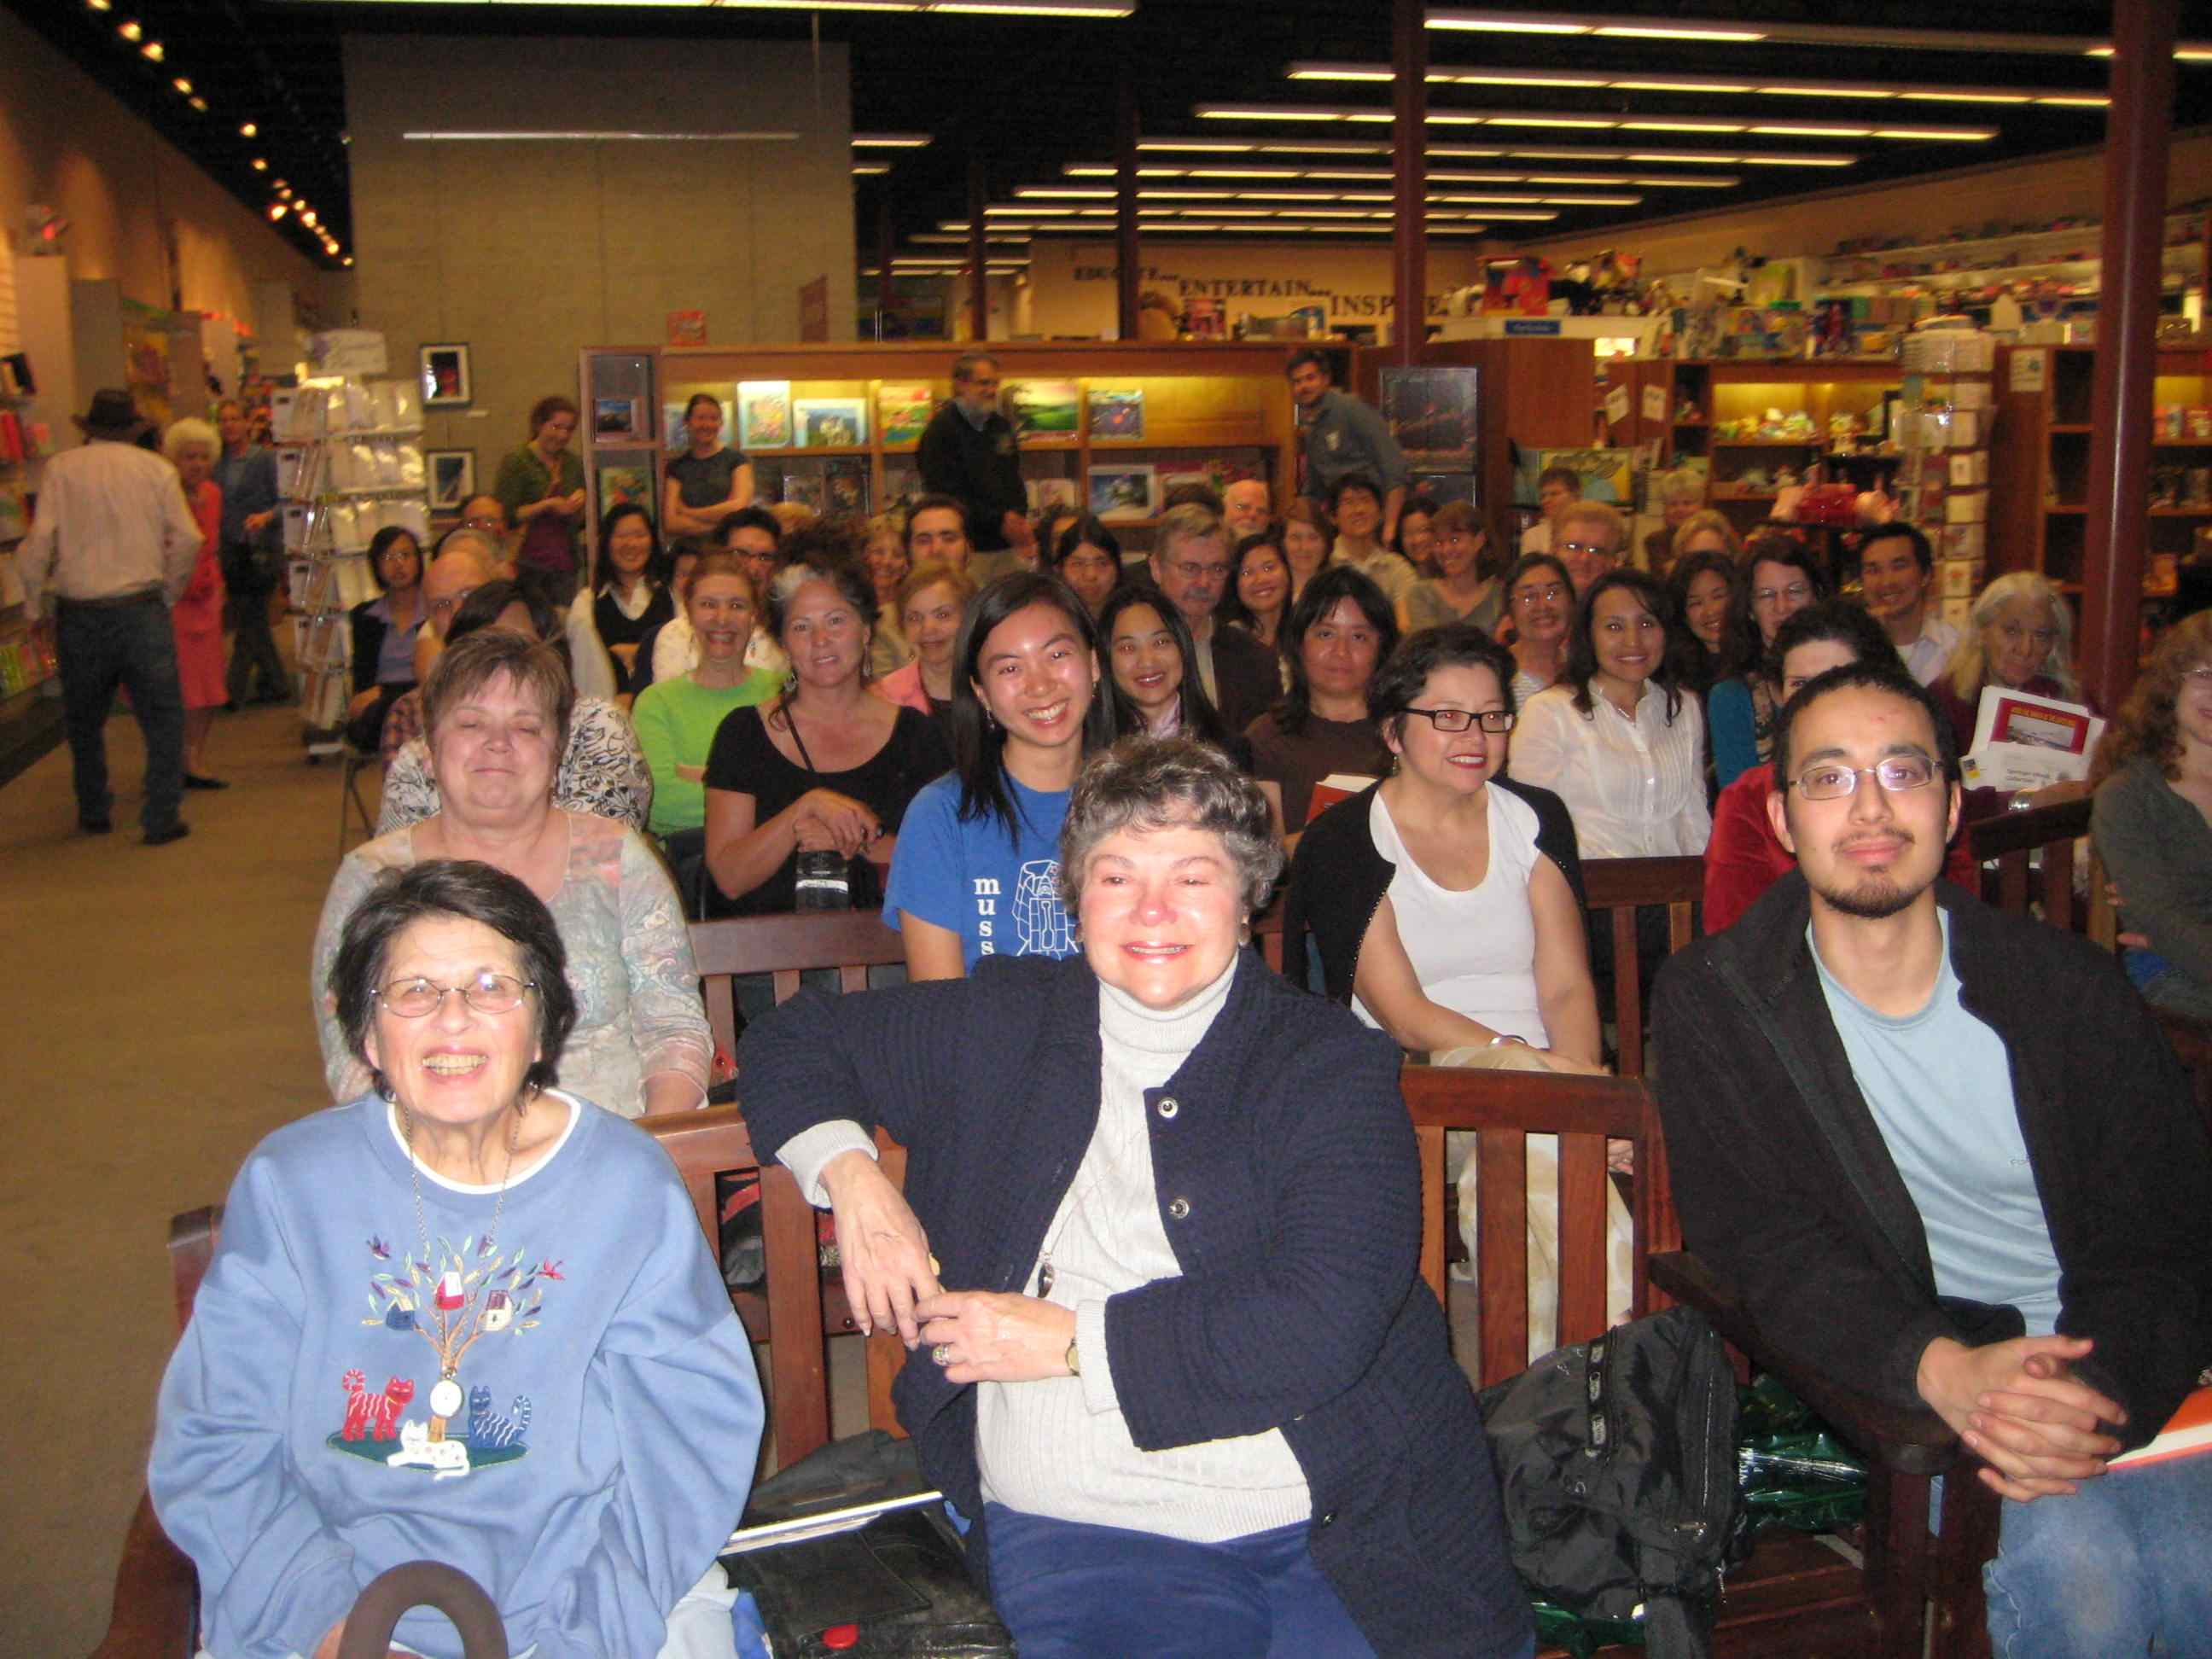 Vroman's Bookstore in Pasadena during Fortune Cookie Chronicles Presentation